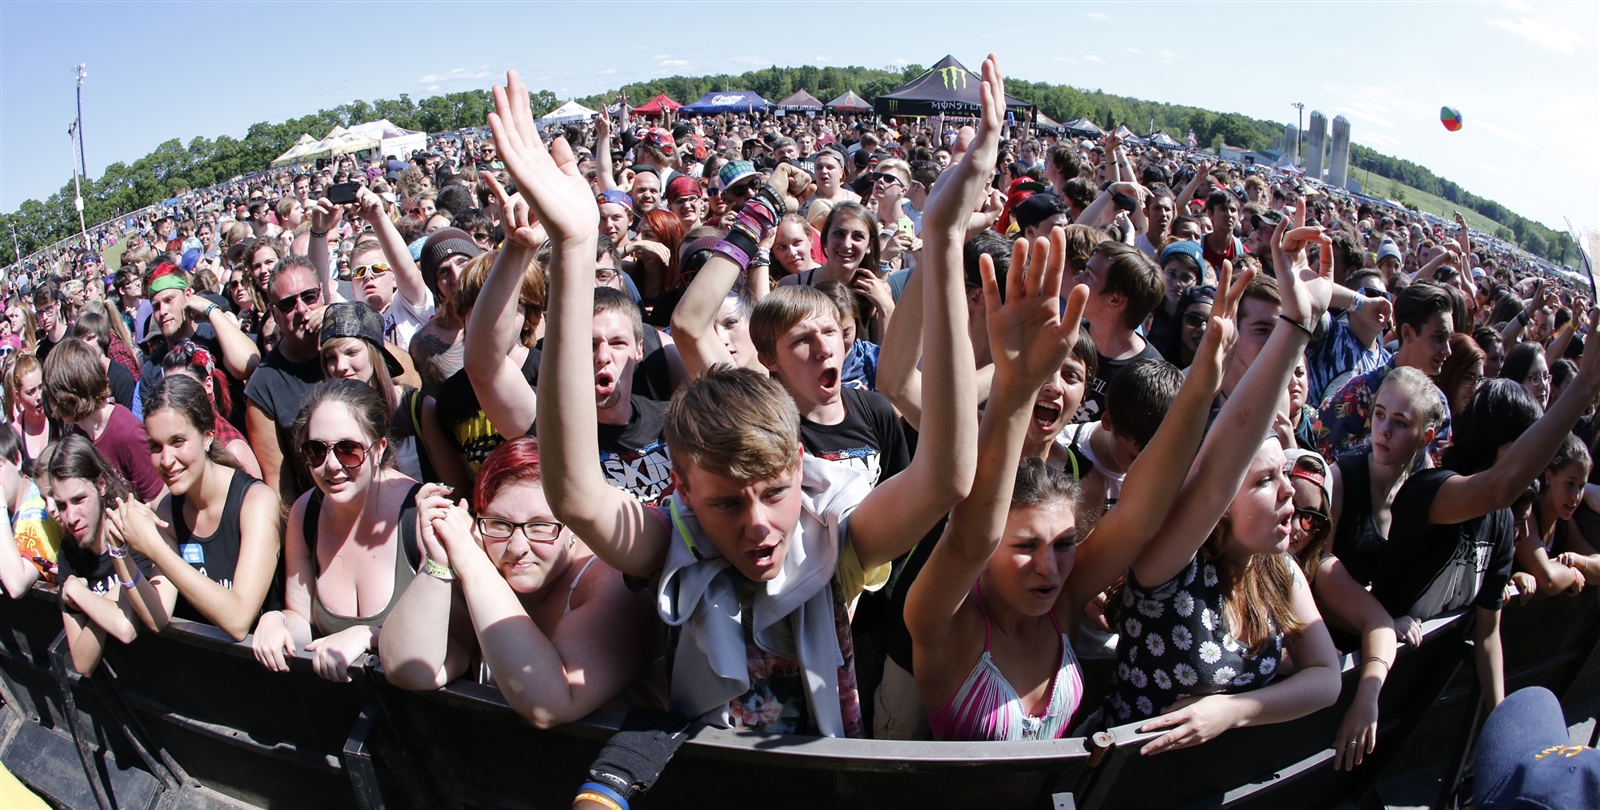 Warped Tour fans packed the Darien Lake Amphitheater  grounds during a recent tour stop. (Harry Scull Jr./Buffalo News file photo)